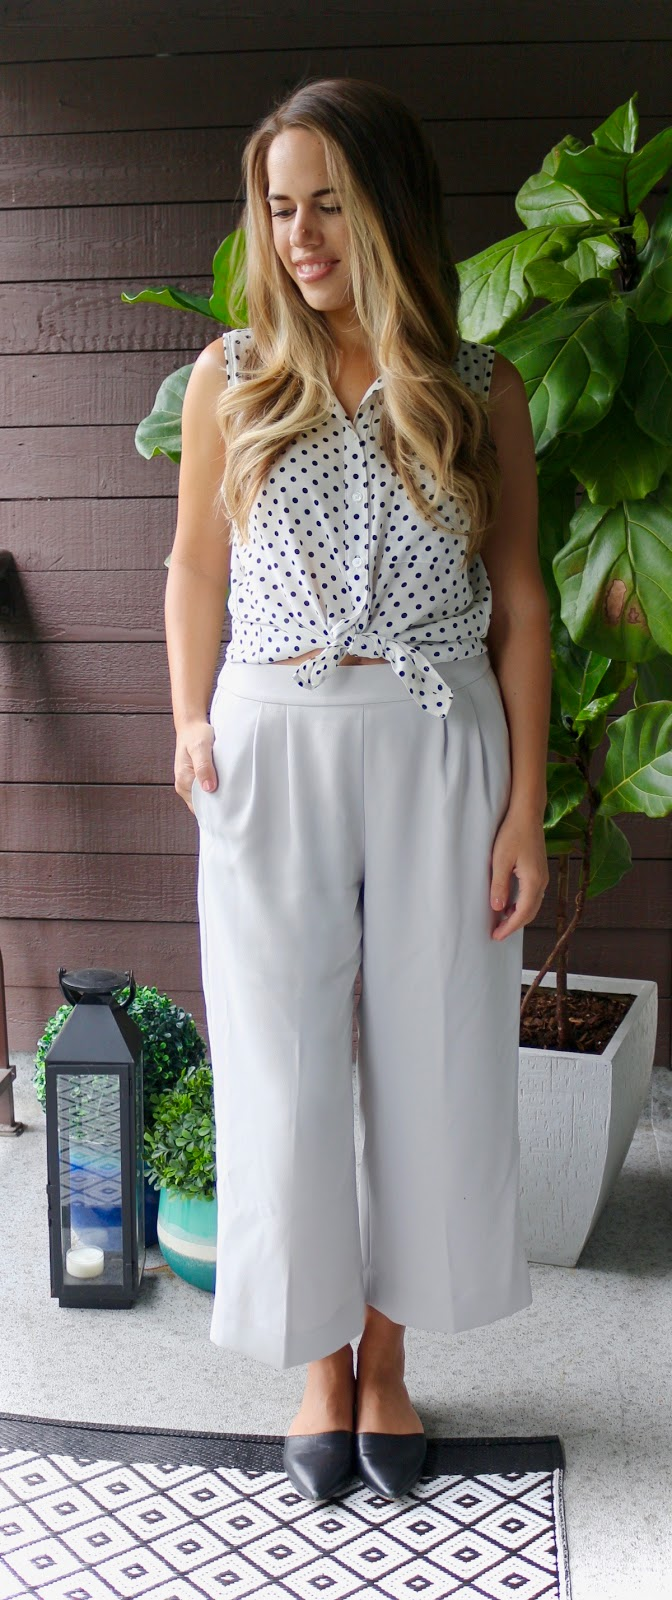 Jules in Flats - Culottes with Knotted Polka Dot Top